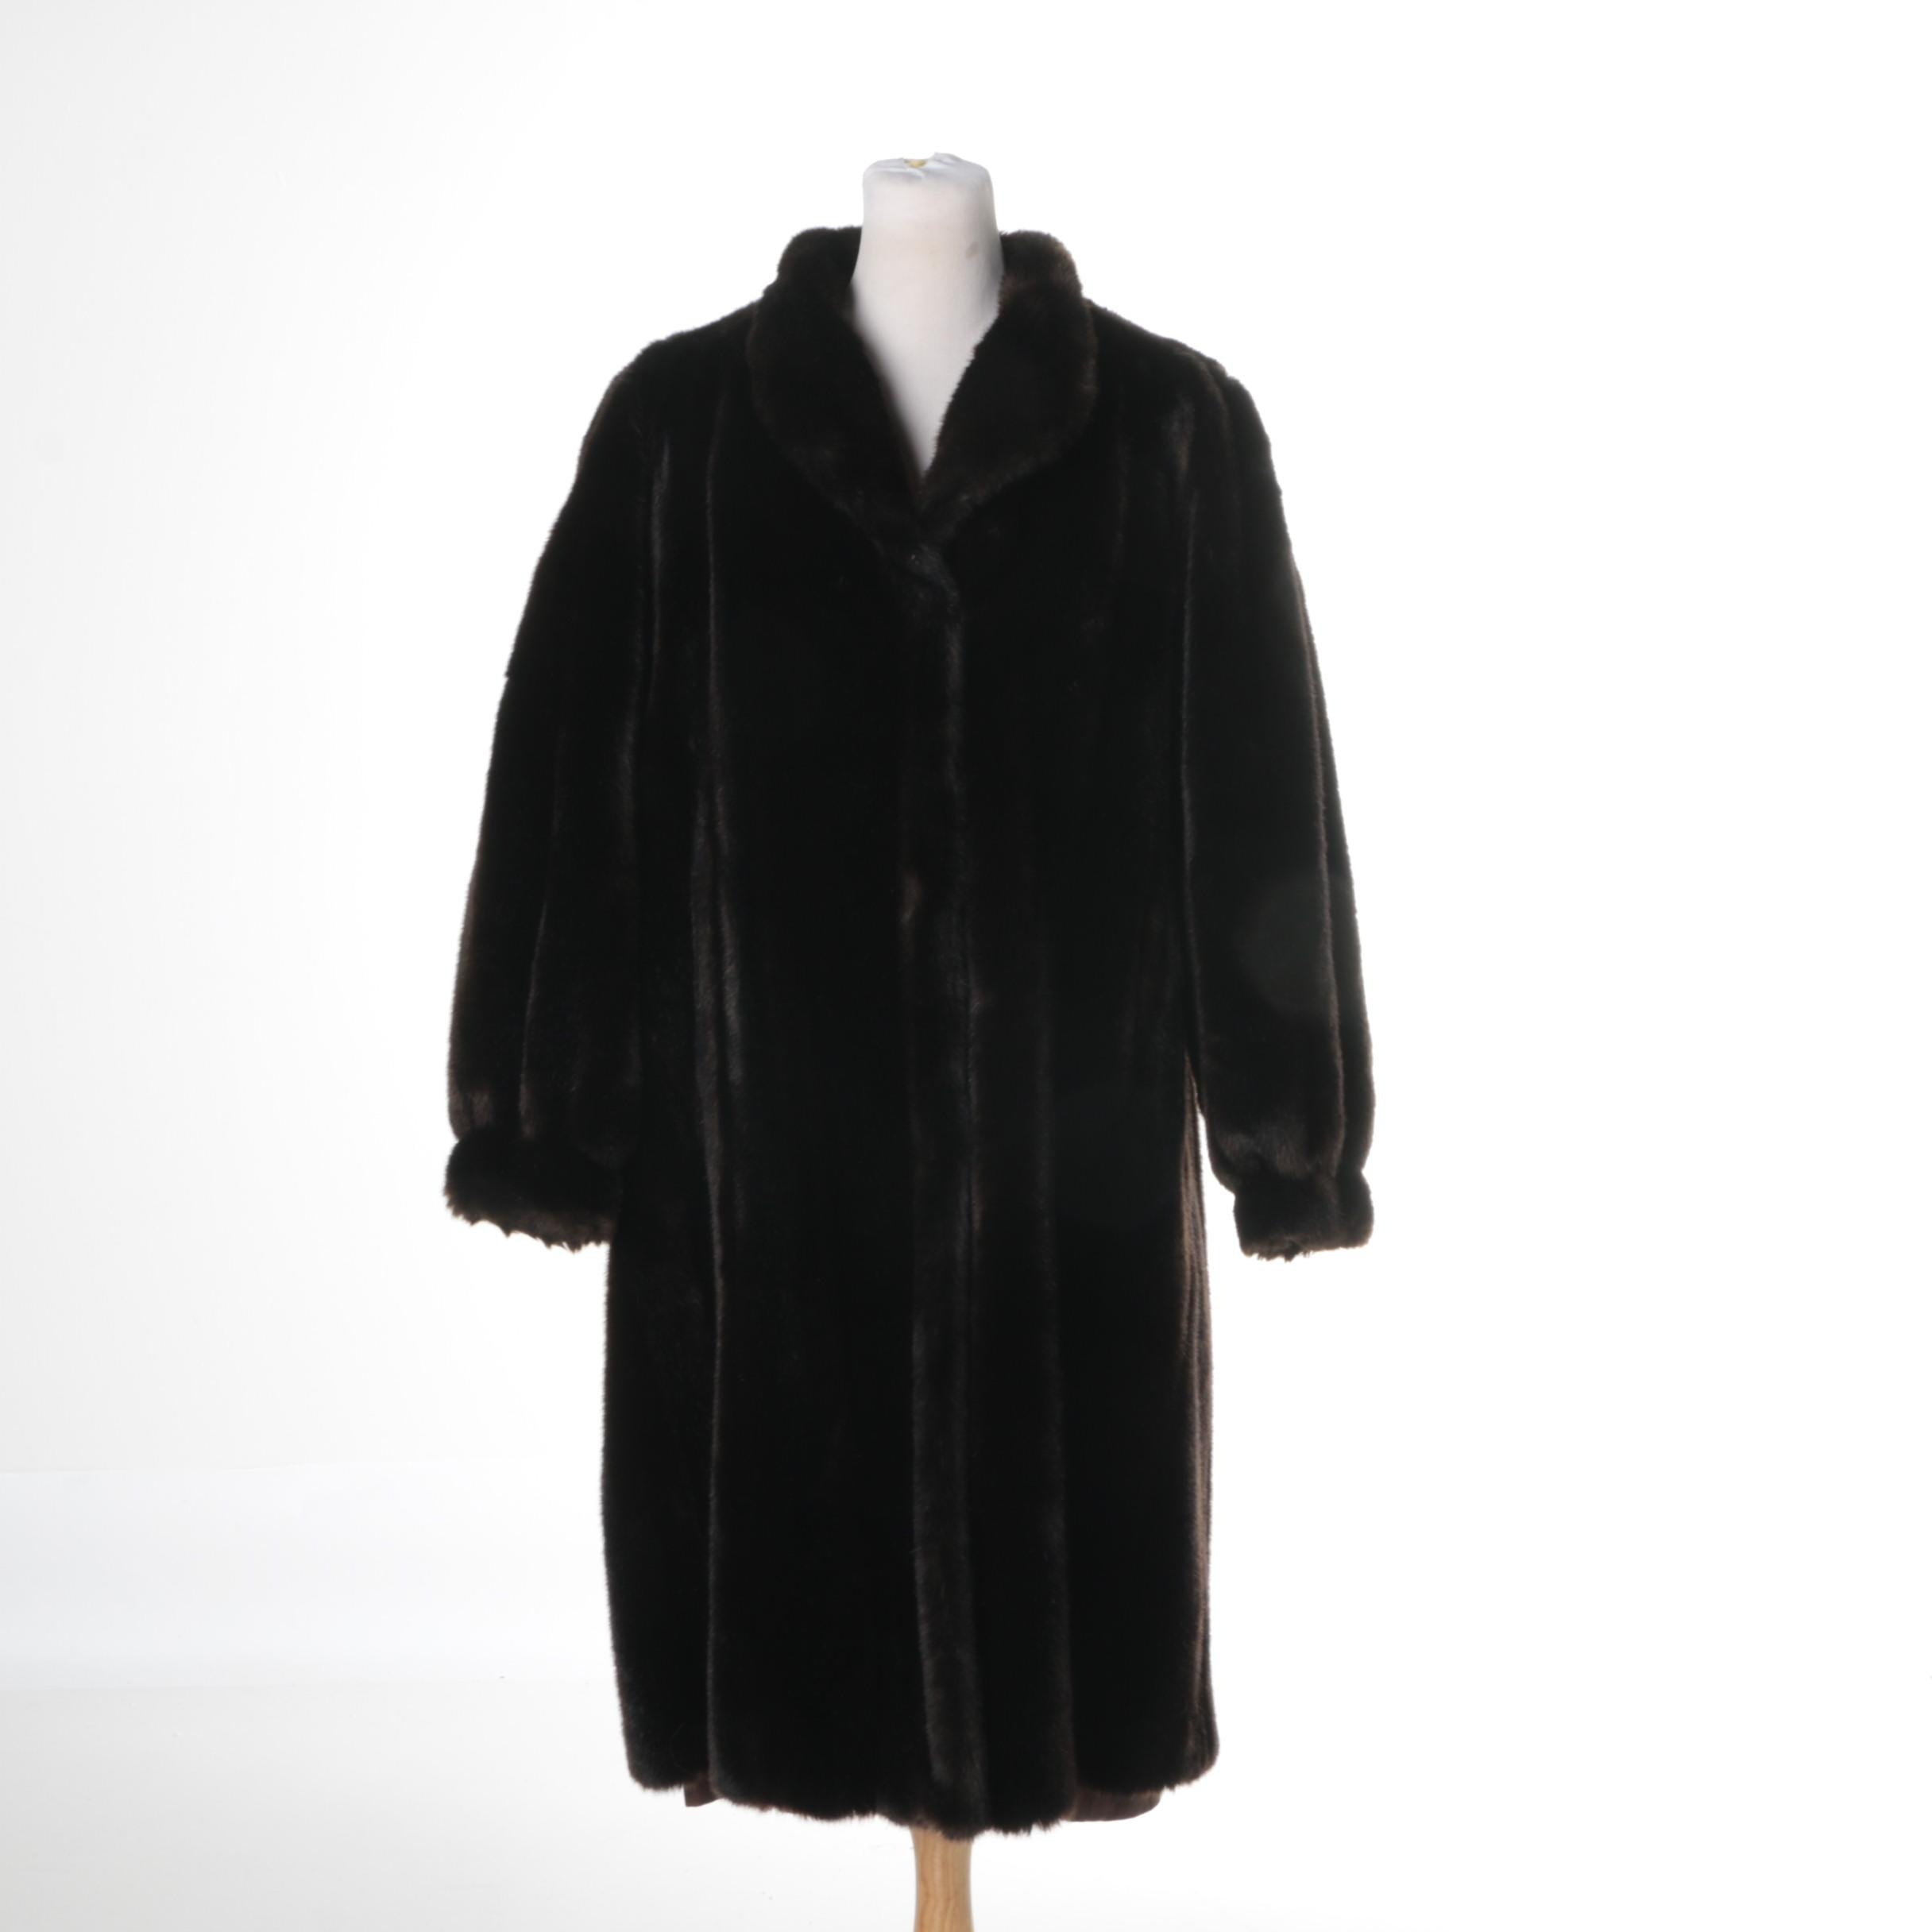 Women's Vintage Tissavel Faux Fur Coat